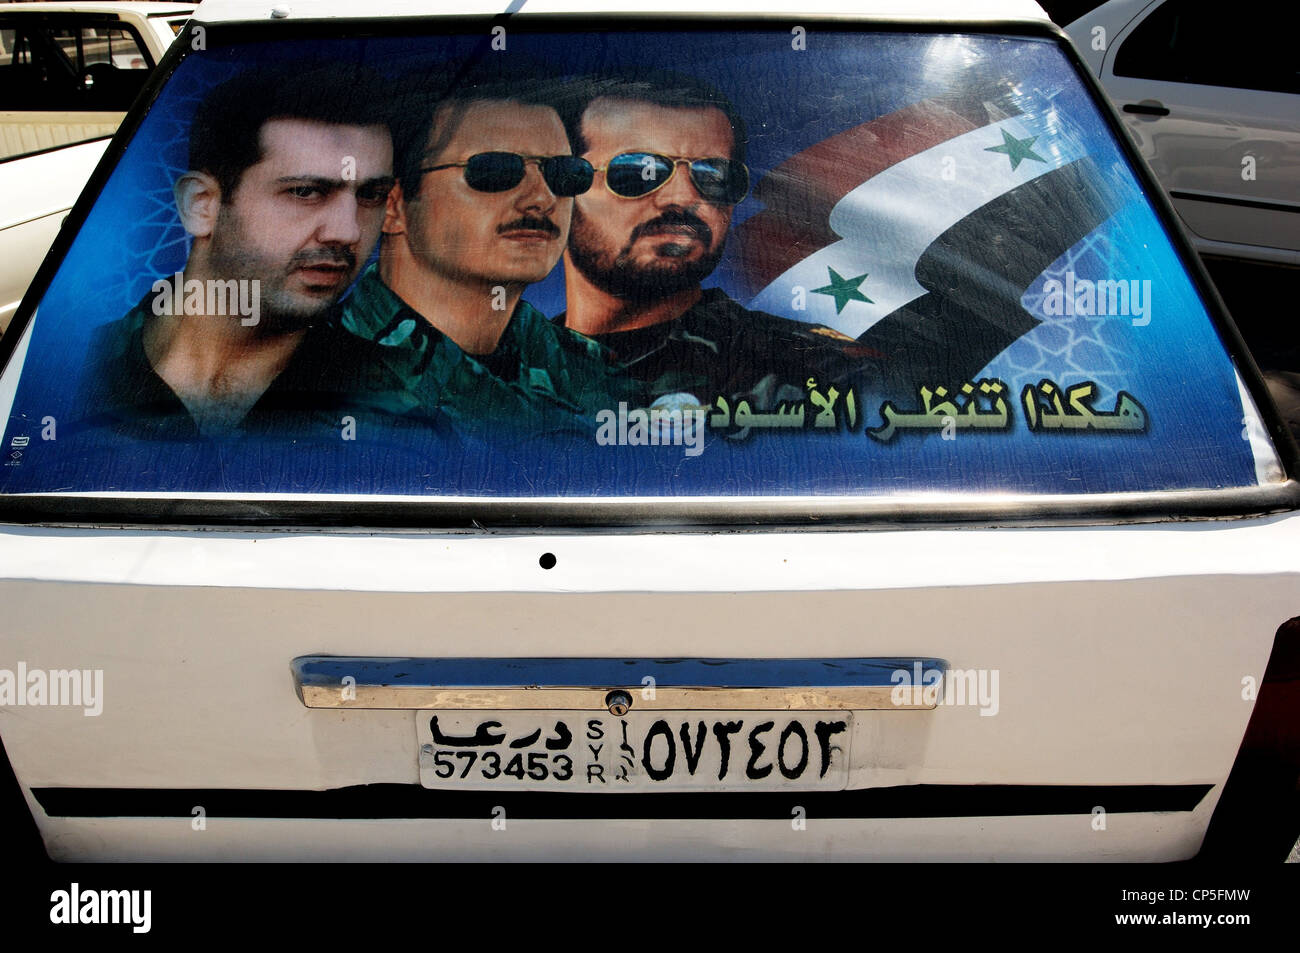 Syria - Bosra. Rear window of car depicted with images of men in uniform - Stock Image